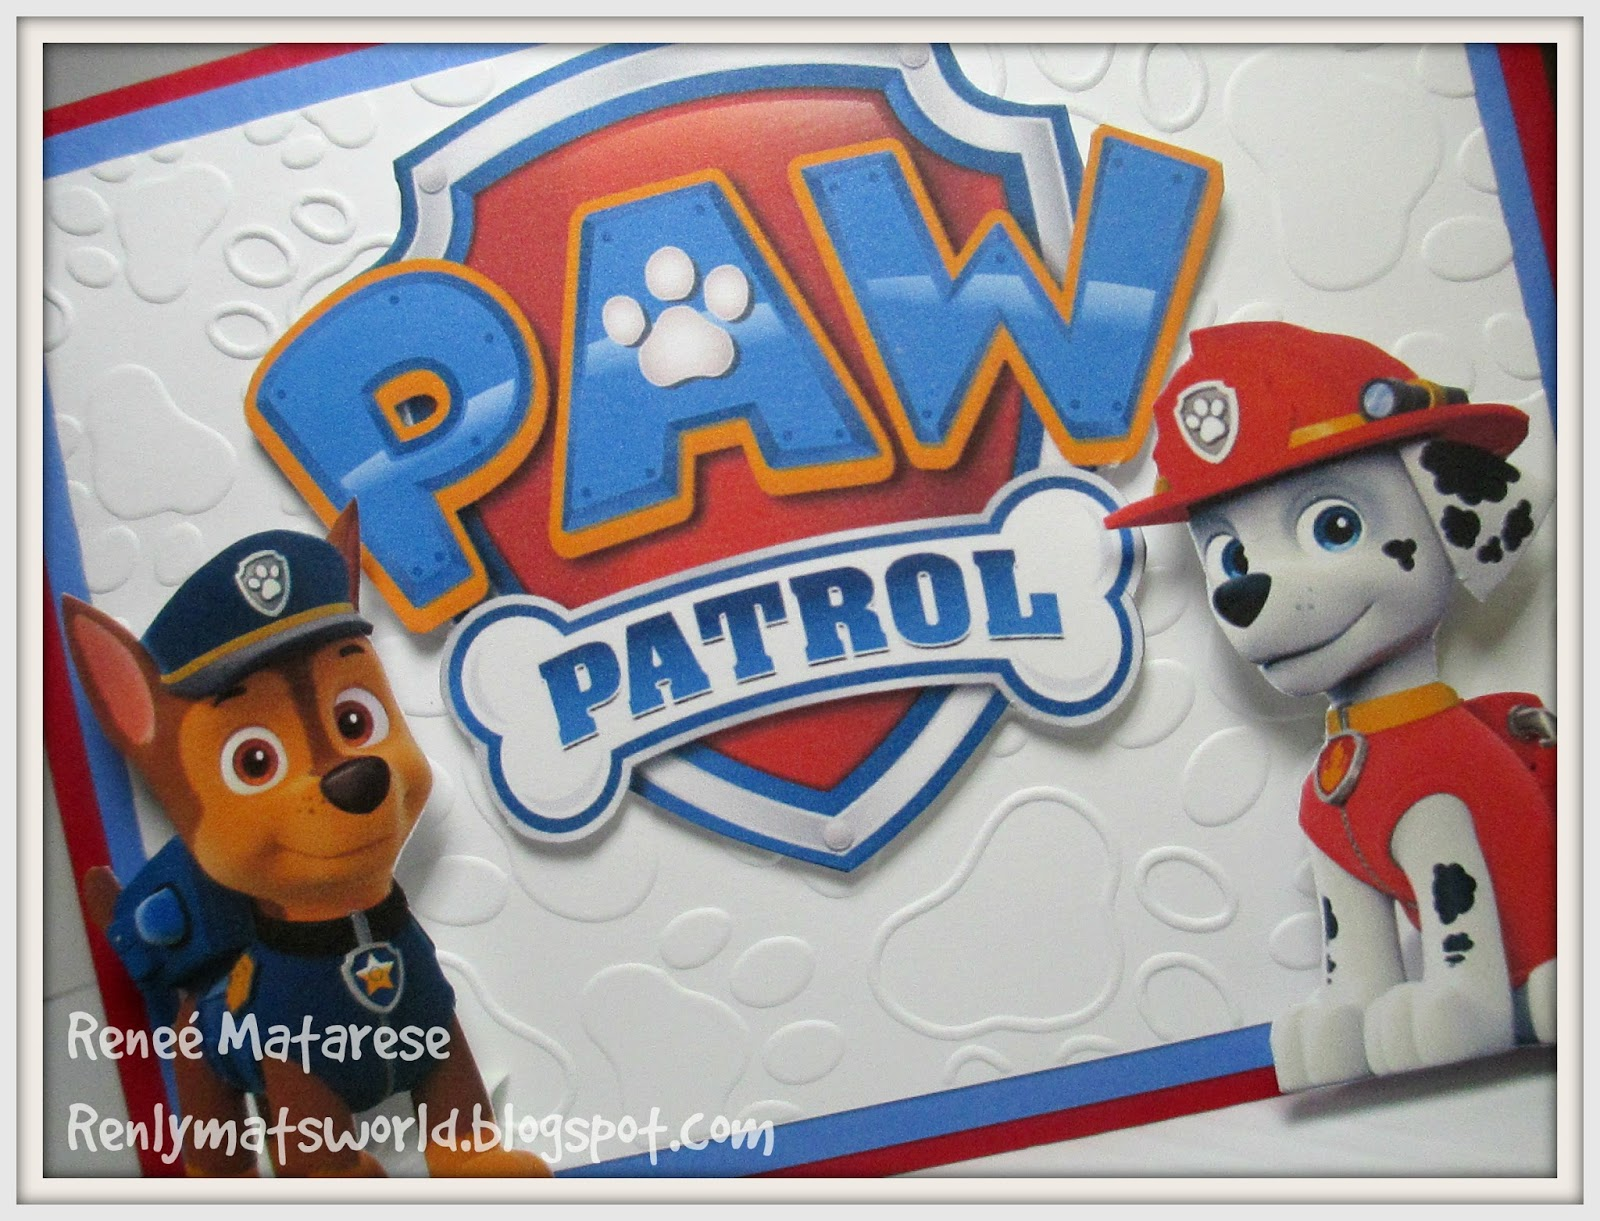 graphic about Paw Patrol Printable Birthday Card named Paw Patrol Birthday Card: Paw Patrol Birthday Card Paw